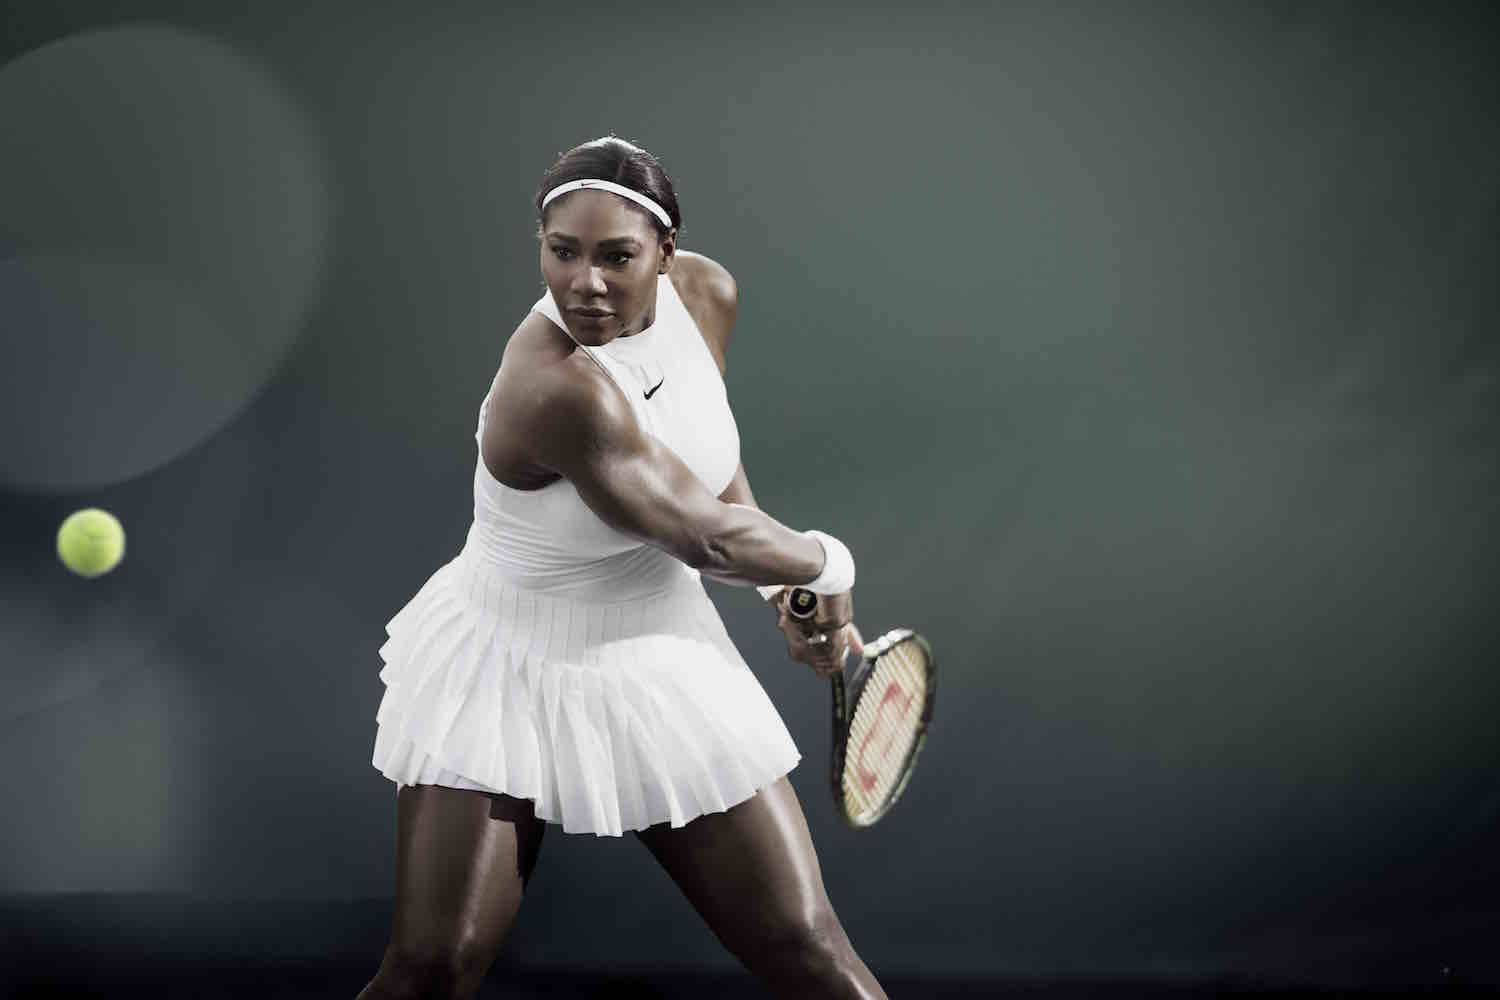 Serena Williams NikeCourt 2